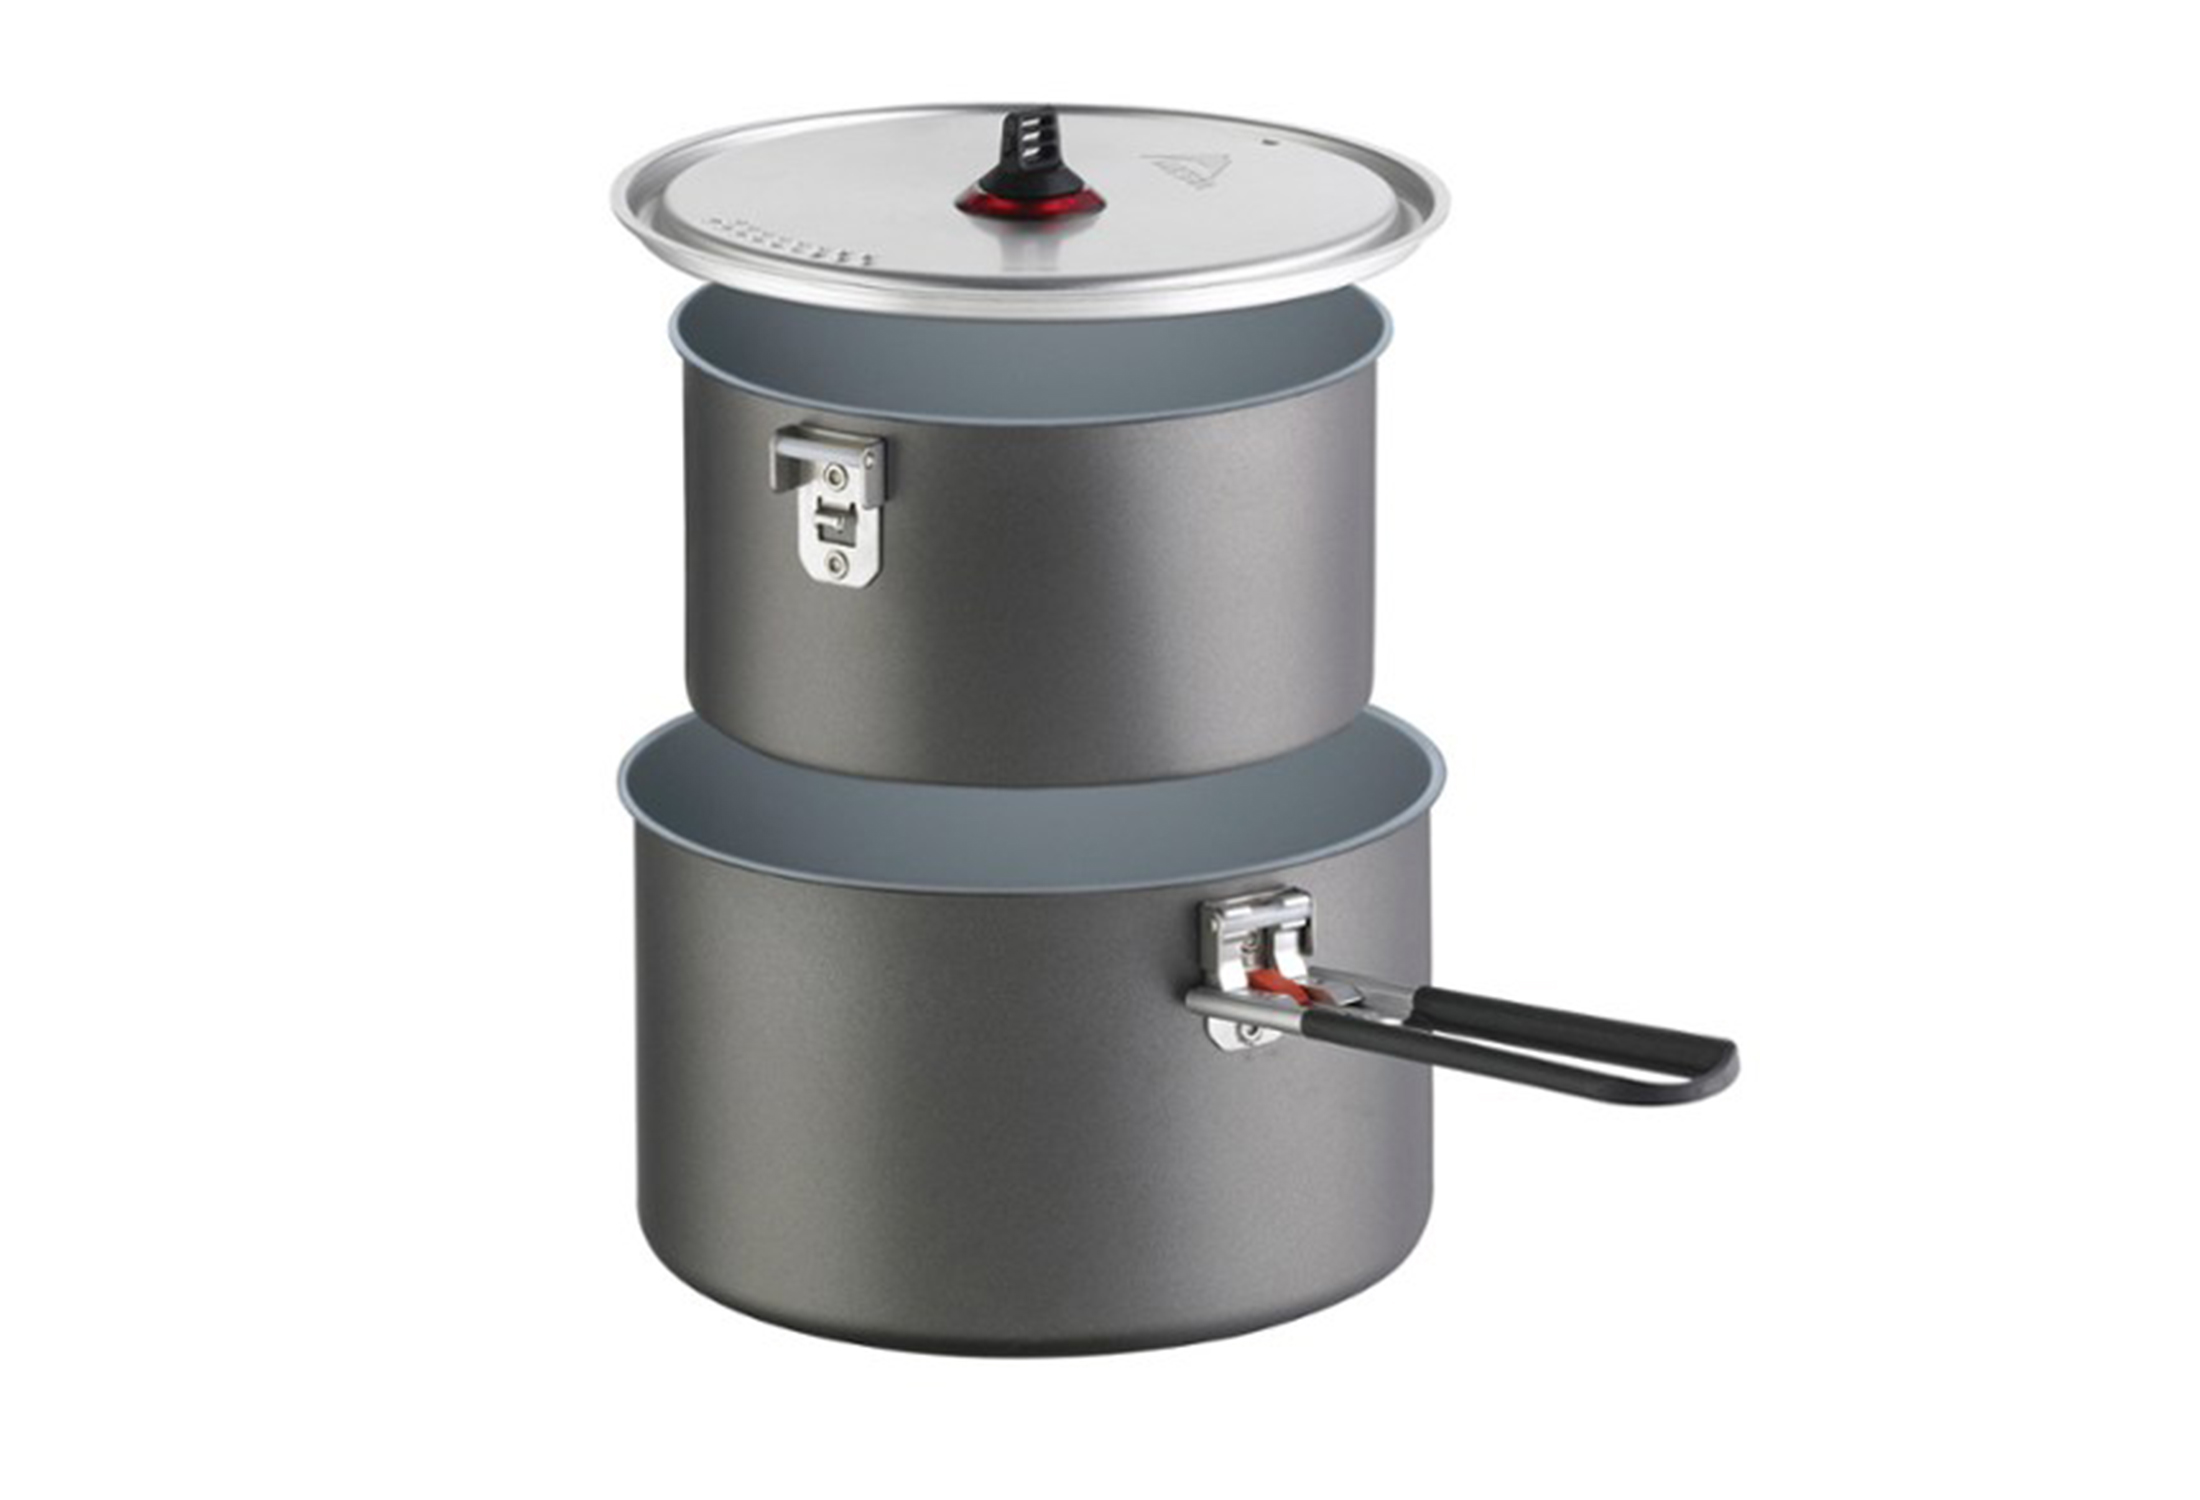 MSR stacking pot set